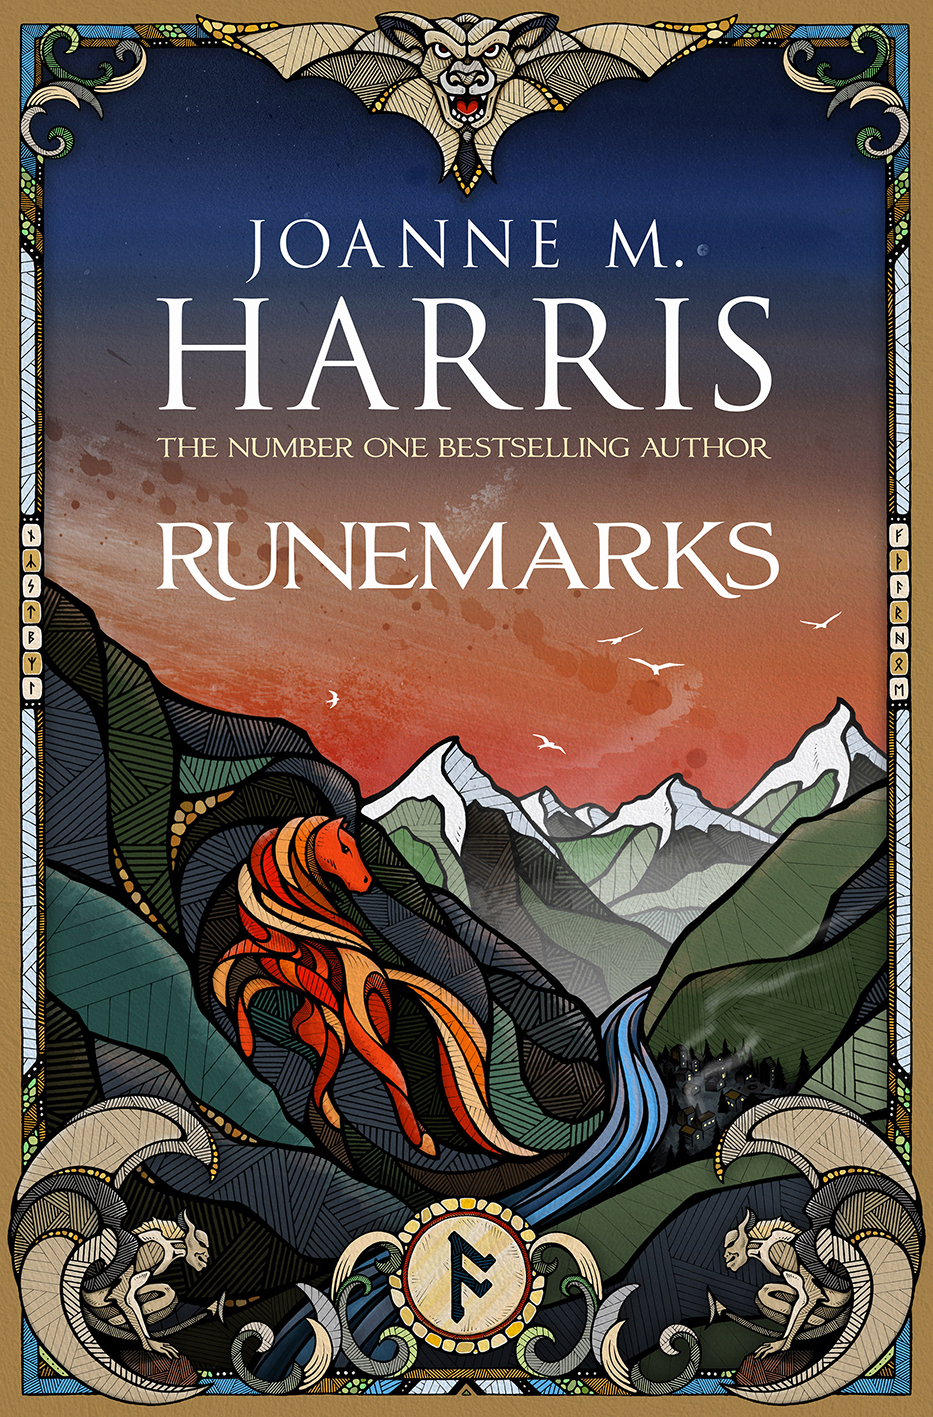 Artwork by Andreas Preis: publisher: Gollancz.